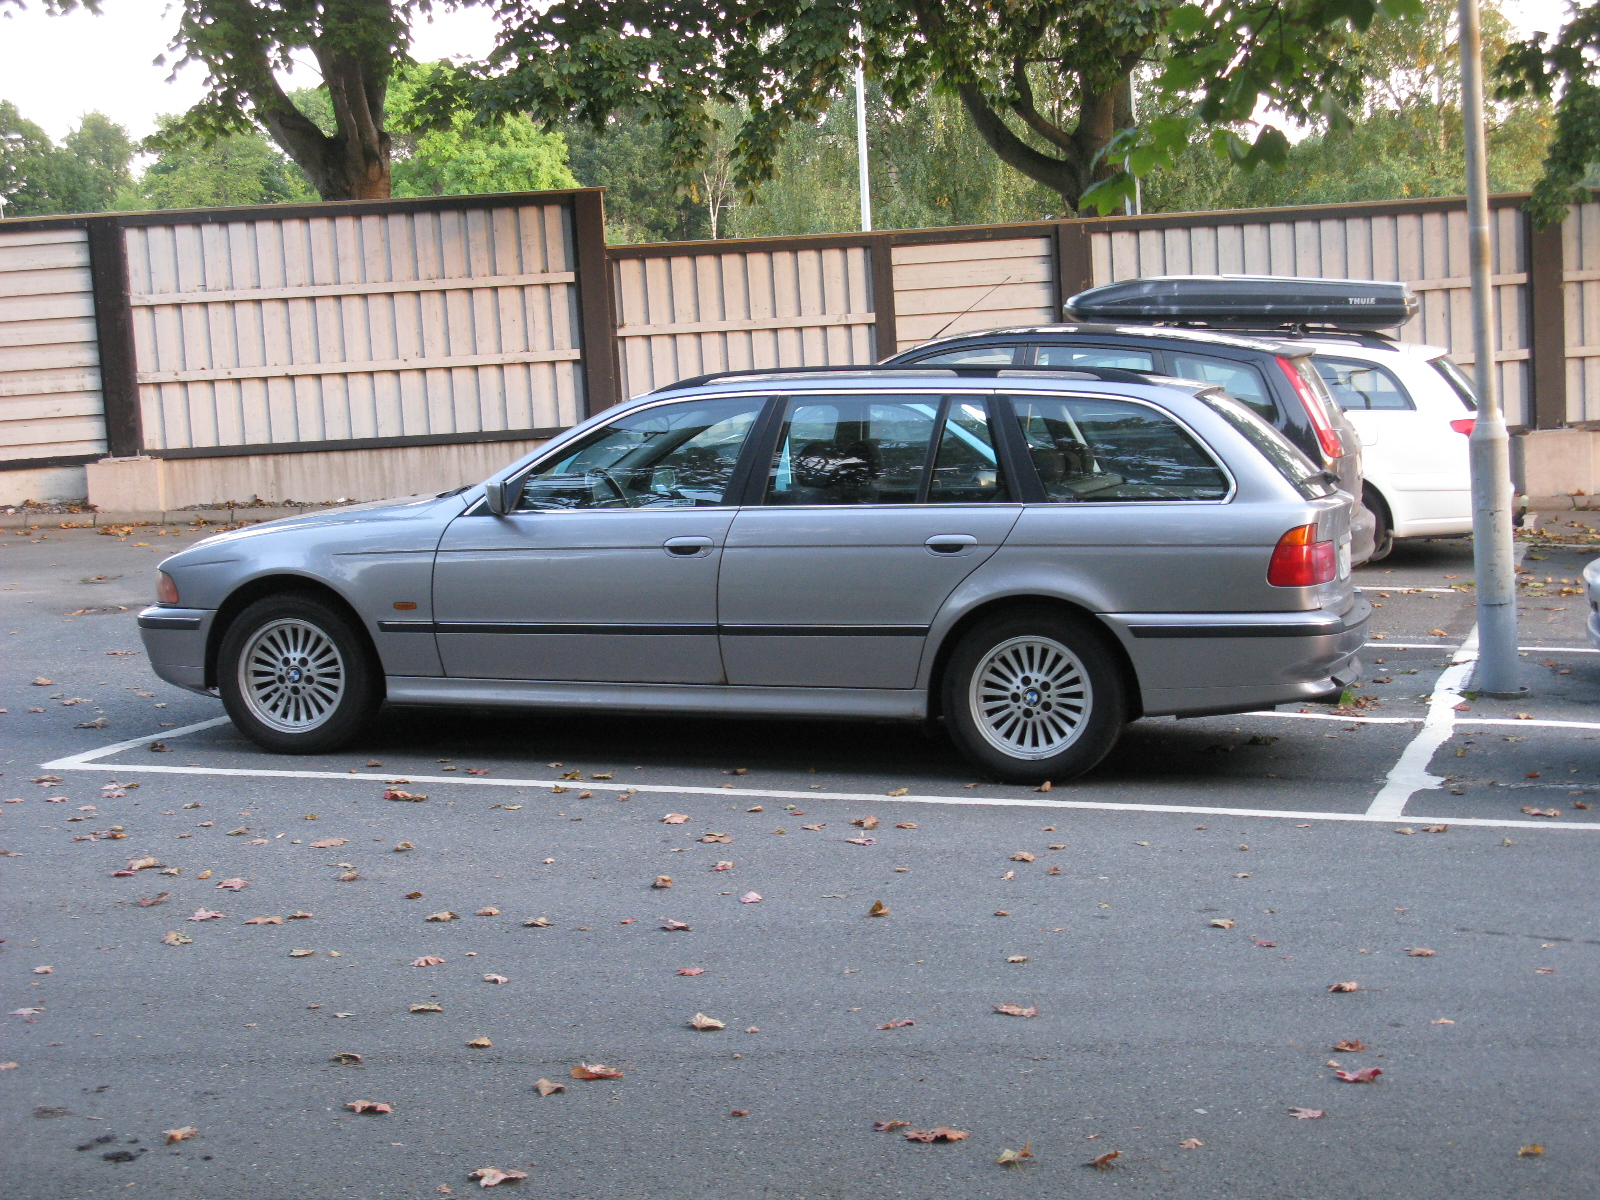 File Bmw 5 Series Touring E39 15050129993 Jpg Wikimedia Commons